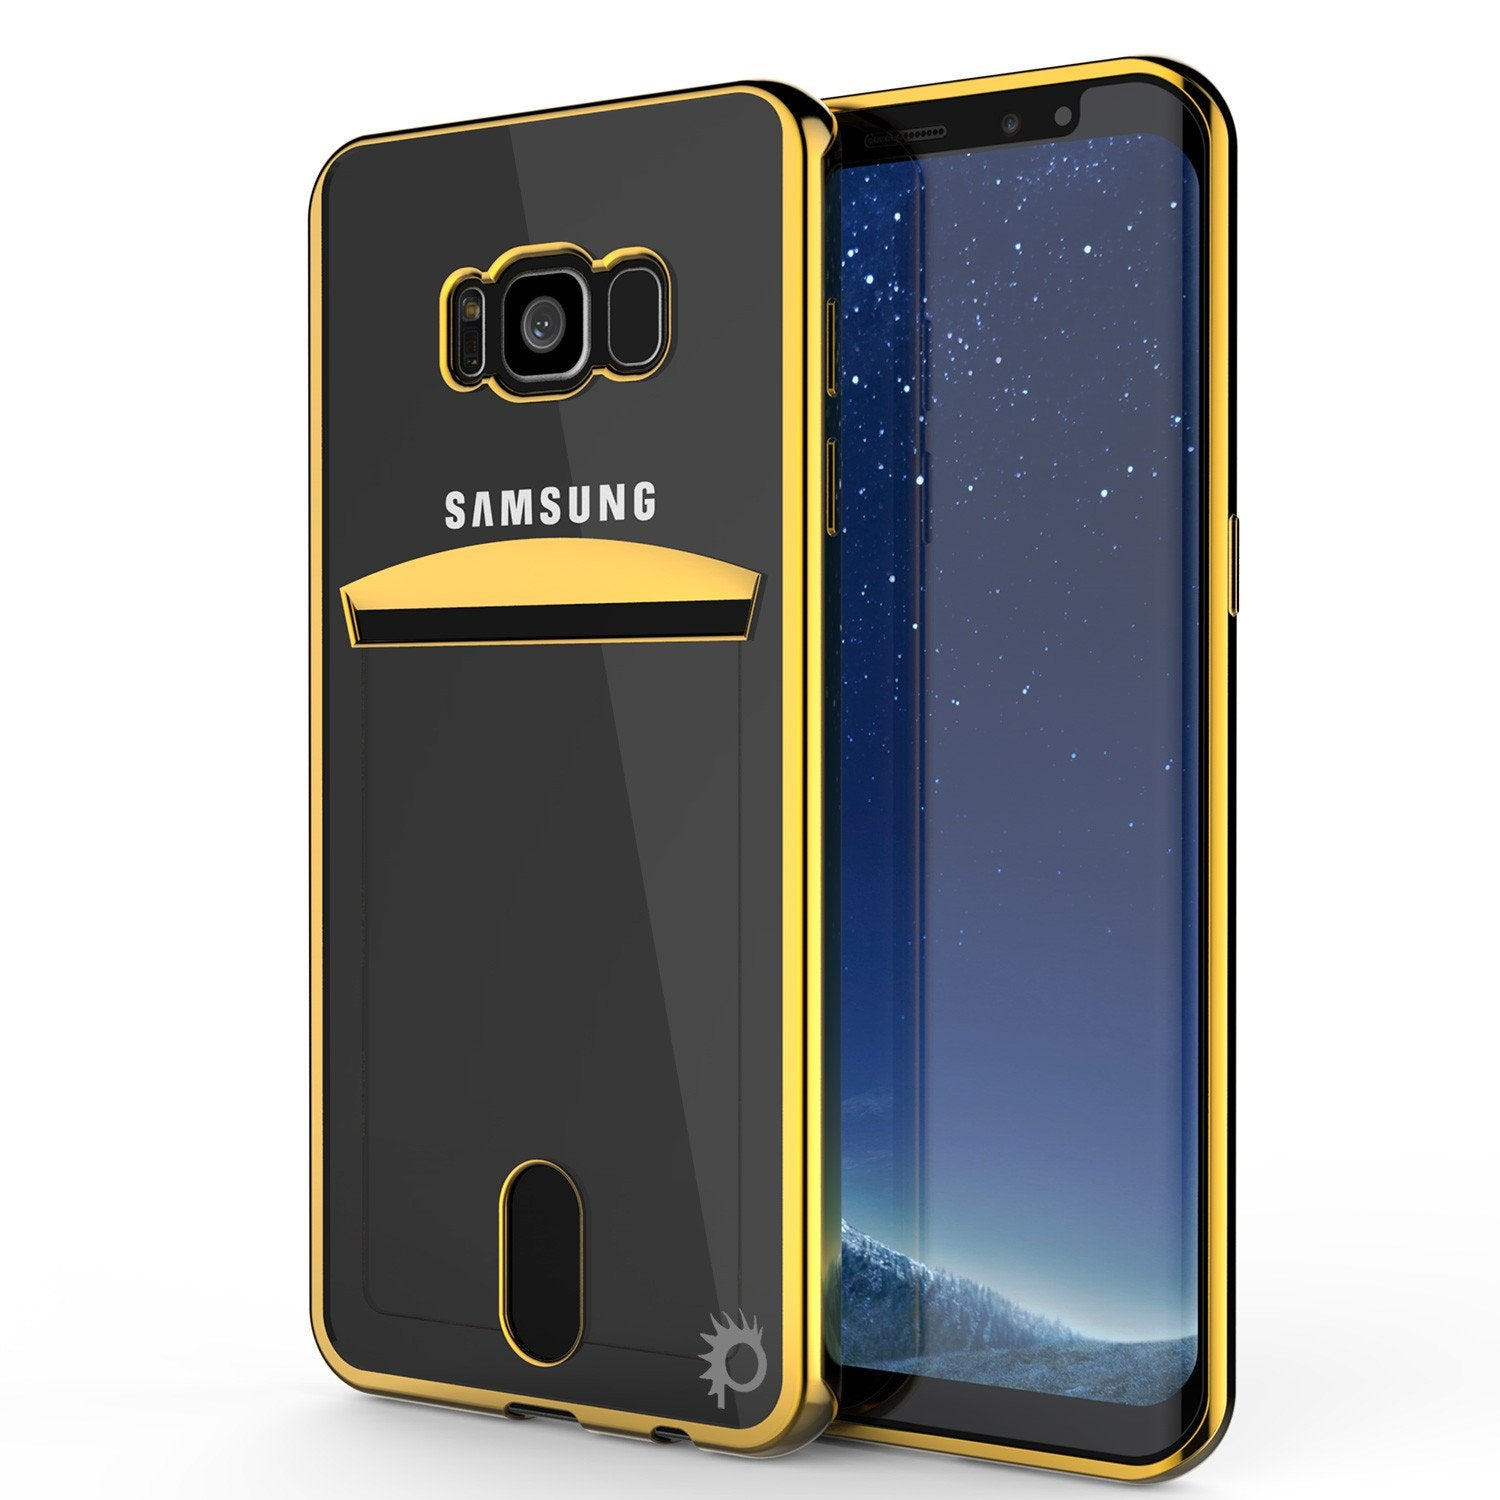 Galaxy S9 Plus Case, PUNKCASE® LUCID Gold Series | Card Slot | SHIELD Screen Protector | Ultra fit